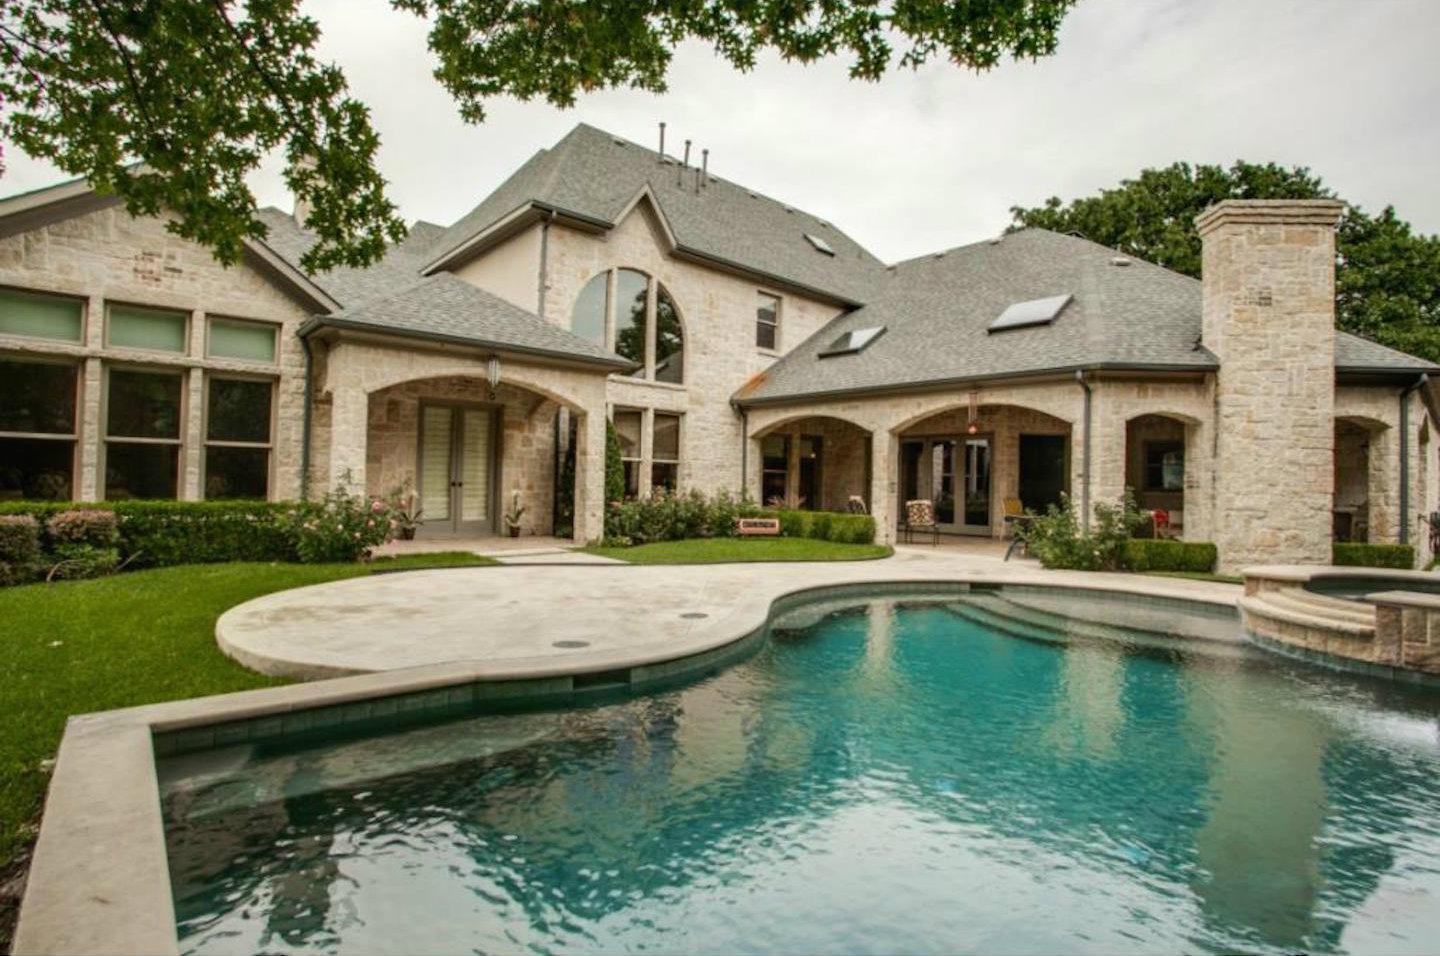 What Jordan Spieth gets up to in his fancy house